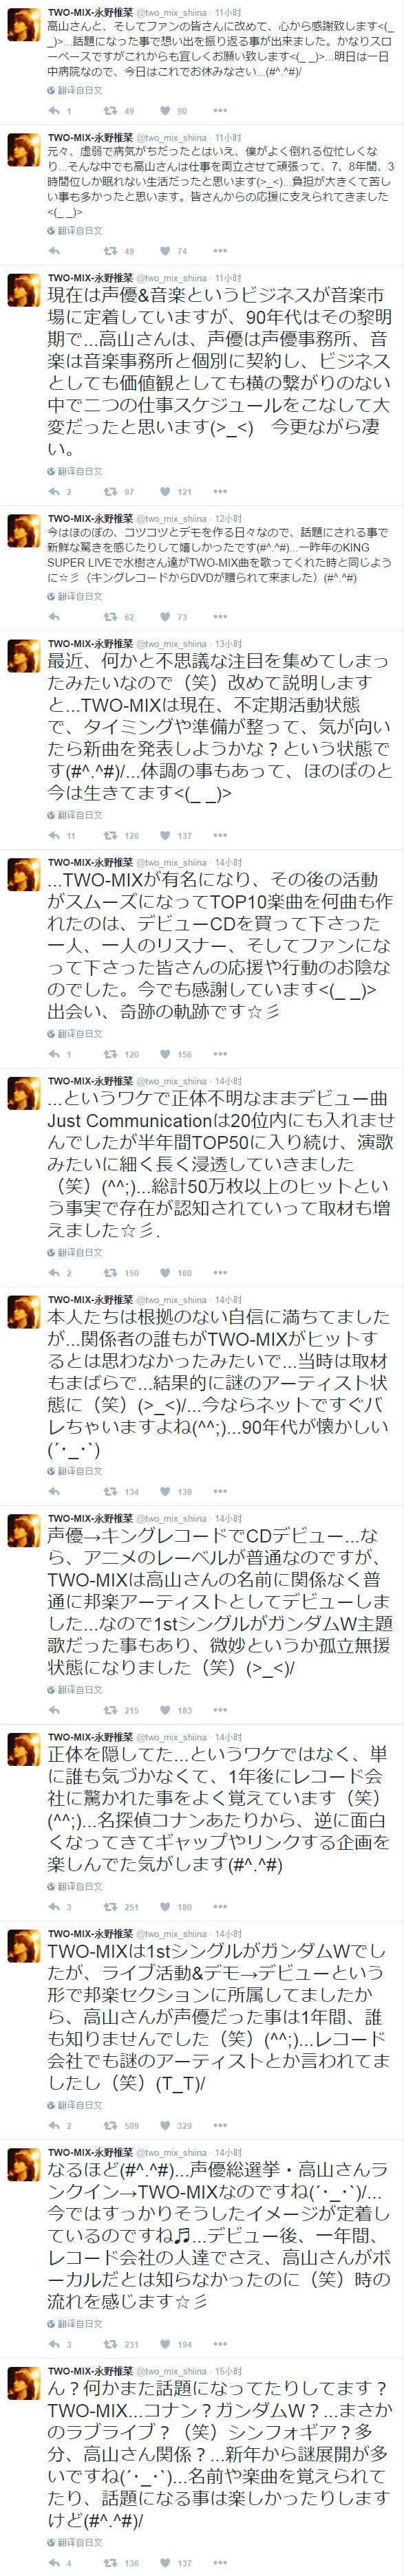 Anitama新声:To years letter